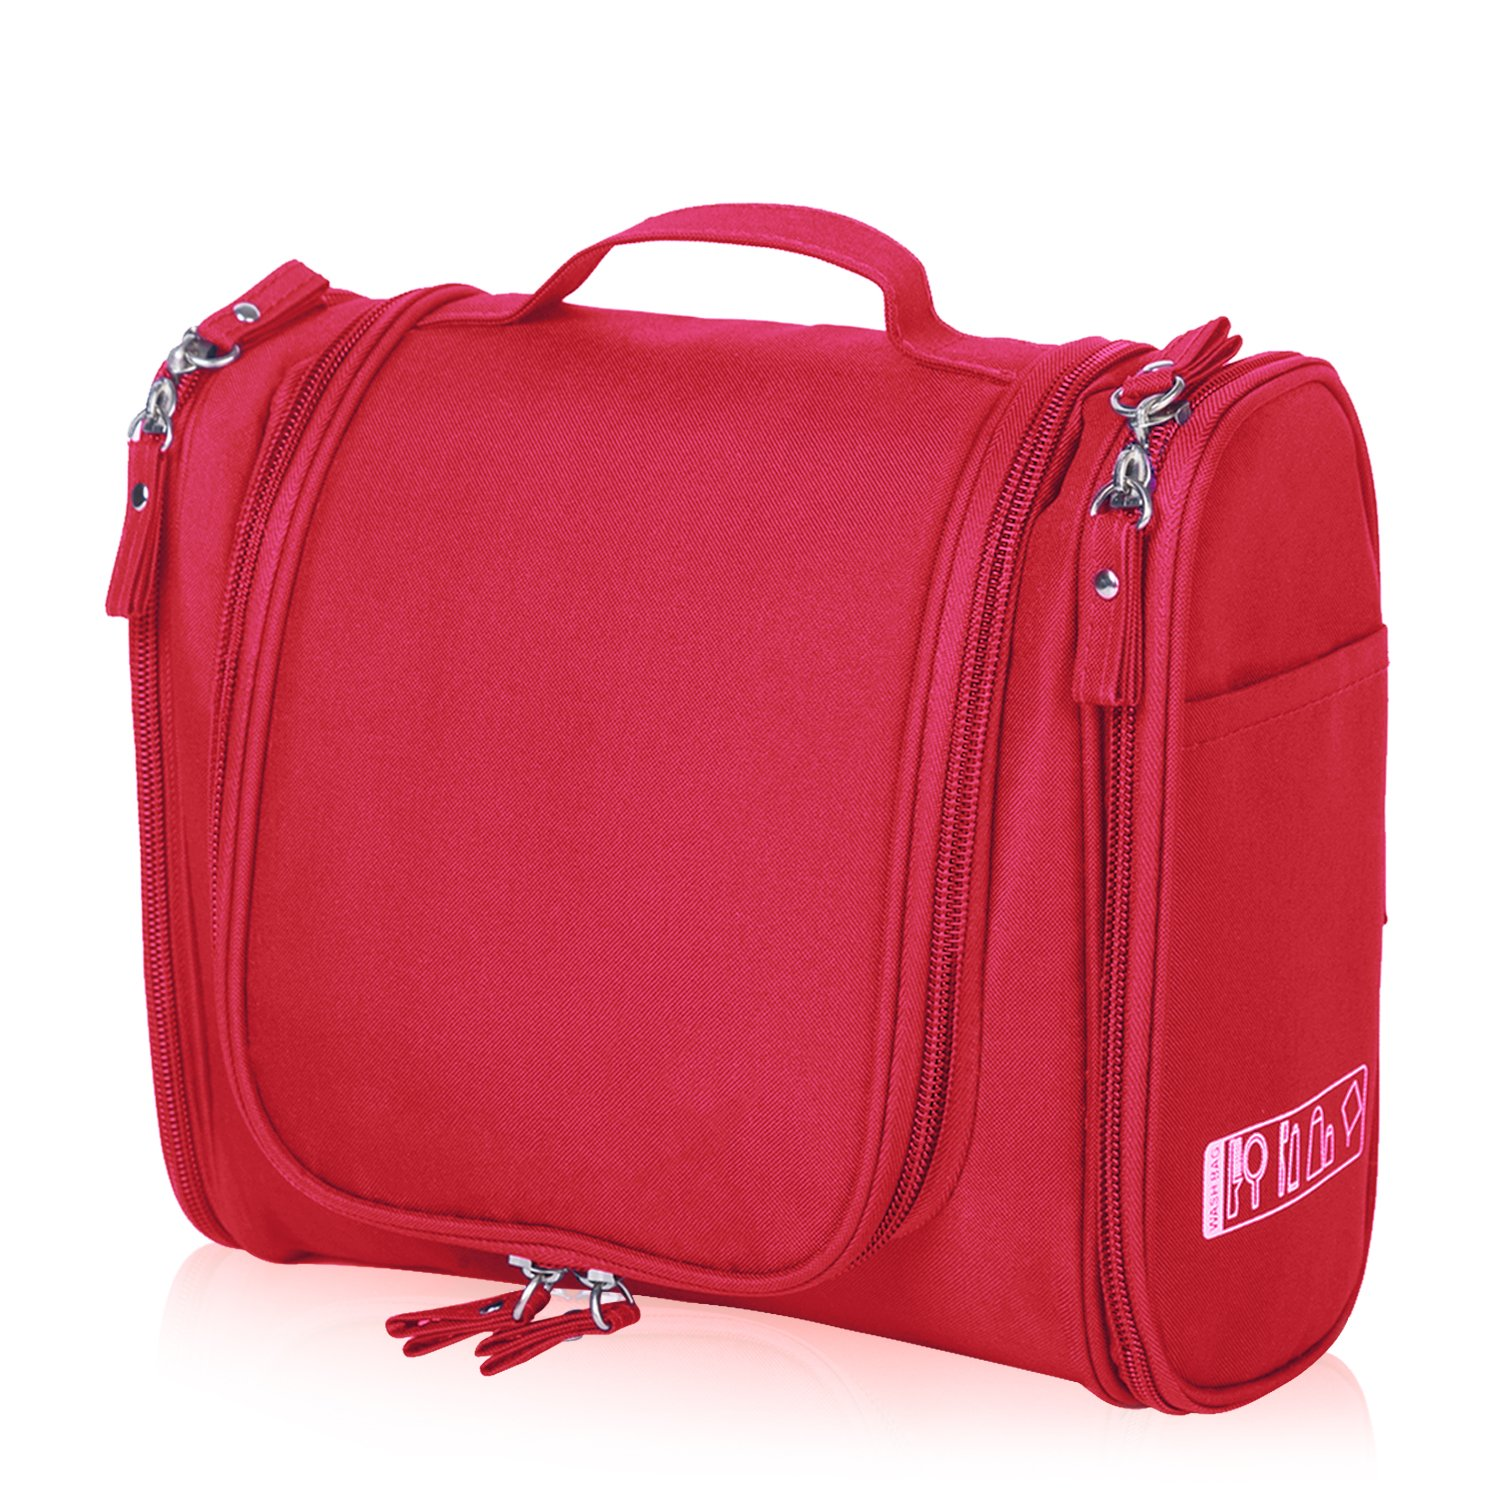 Hanging Toiletry Bag Travel Cosmetic Kit - Large Essentials Organizer - Sturdy Hook Makeup bag - Heavy Duty Waterproof for Men and Womens (Red)